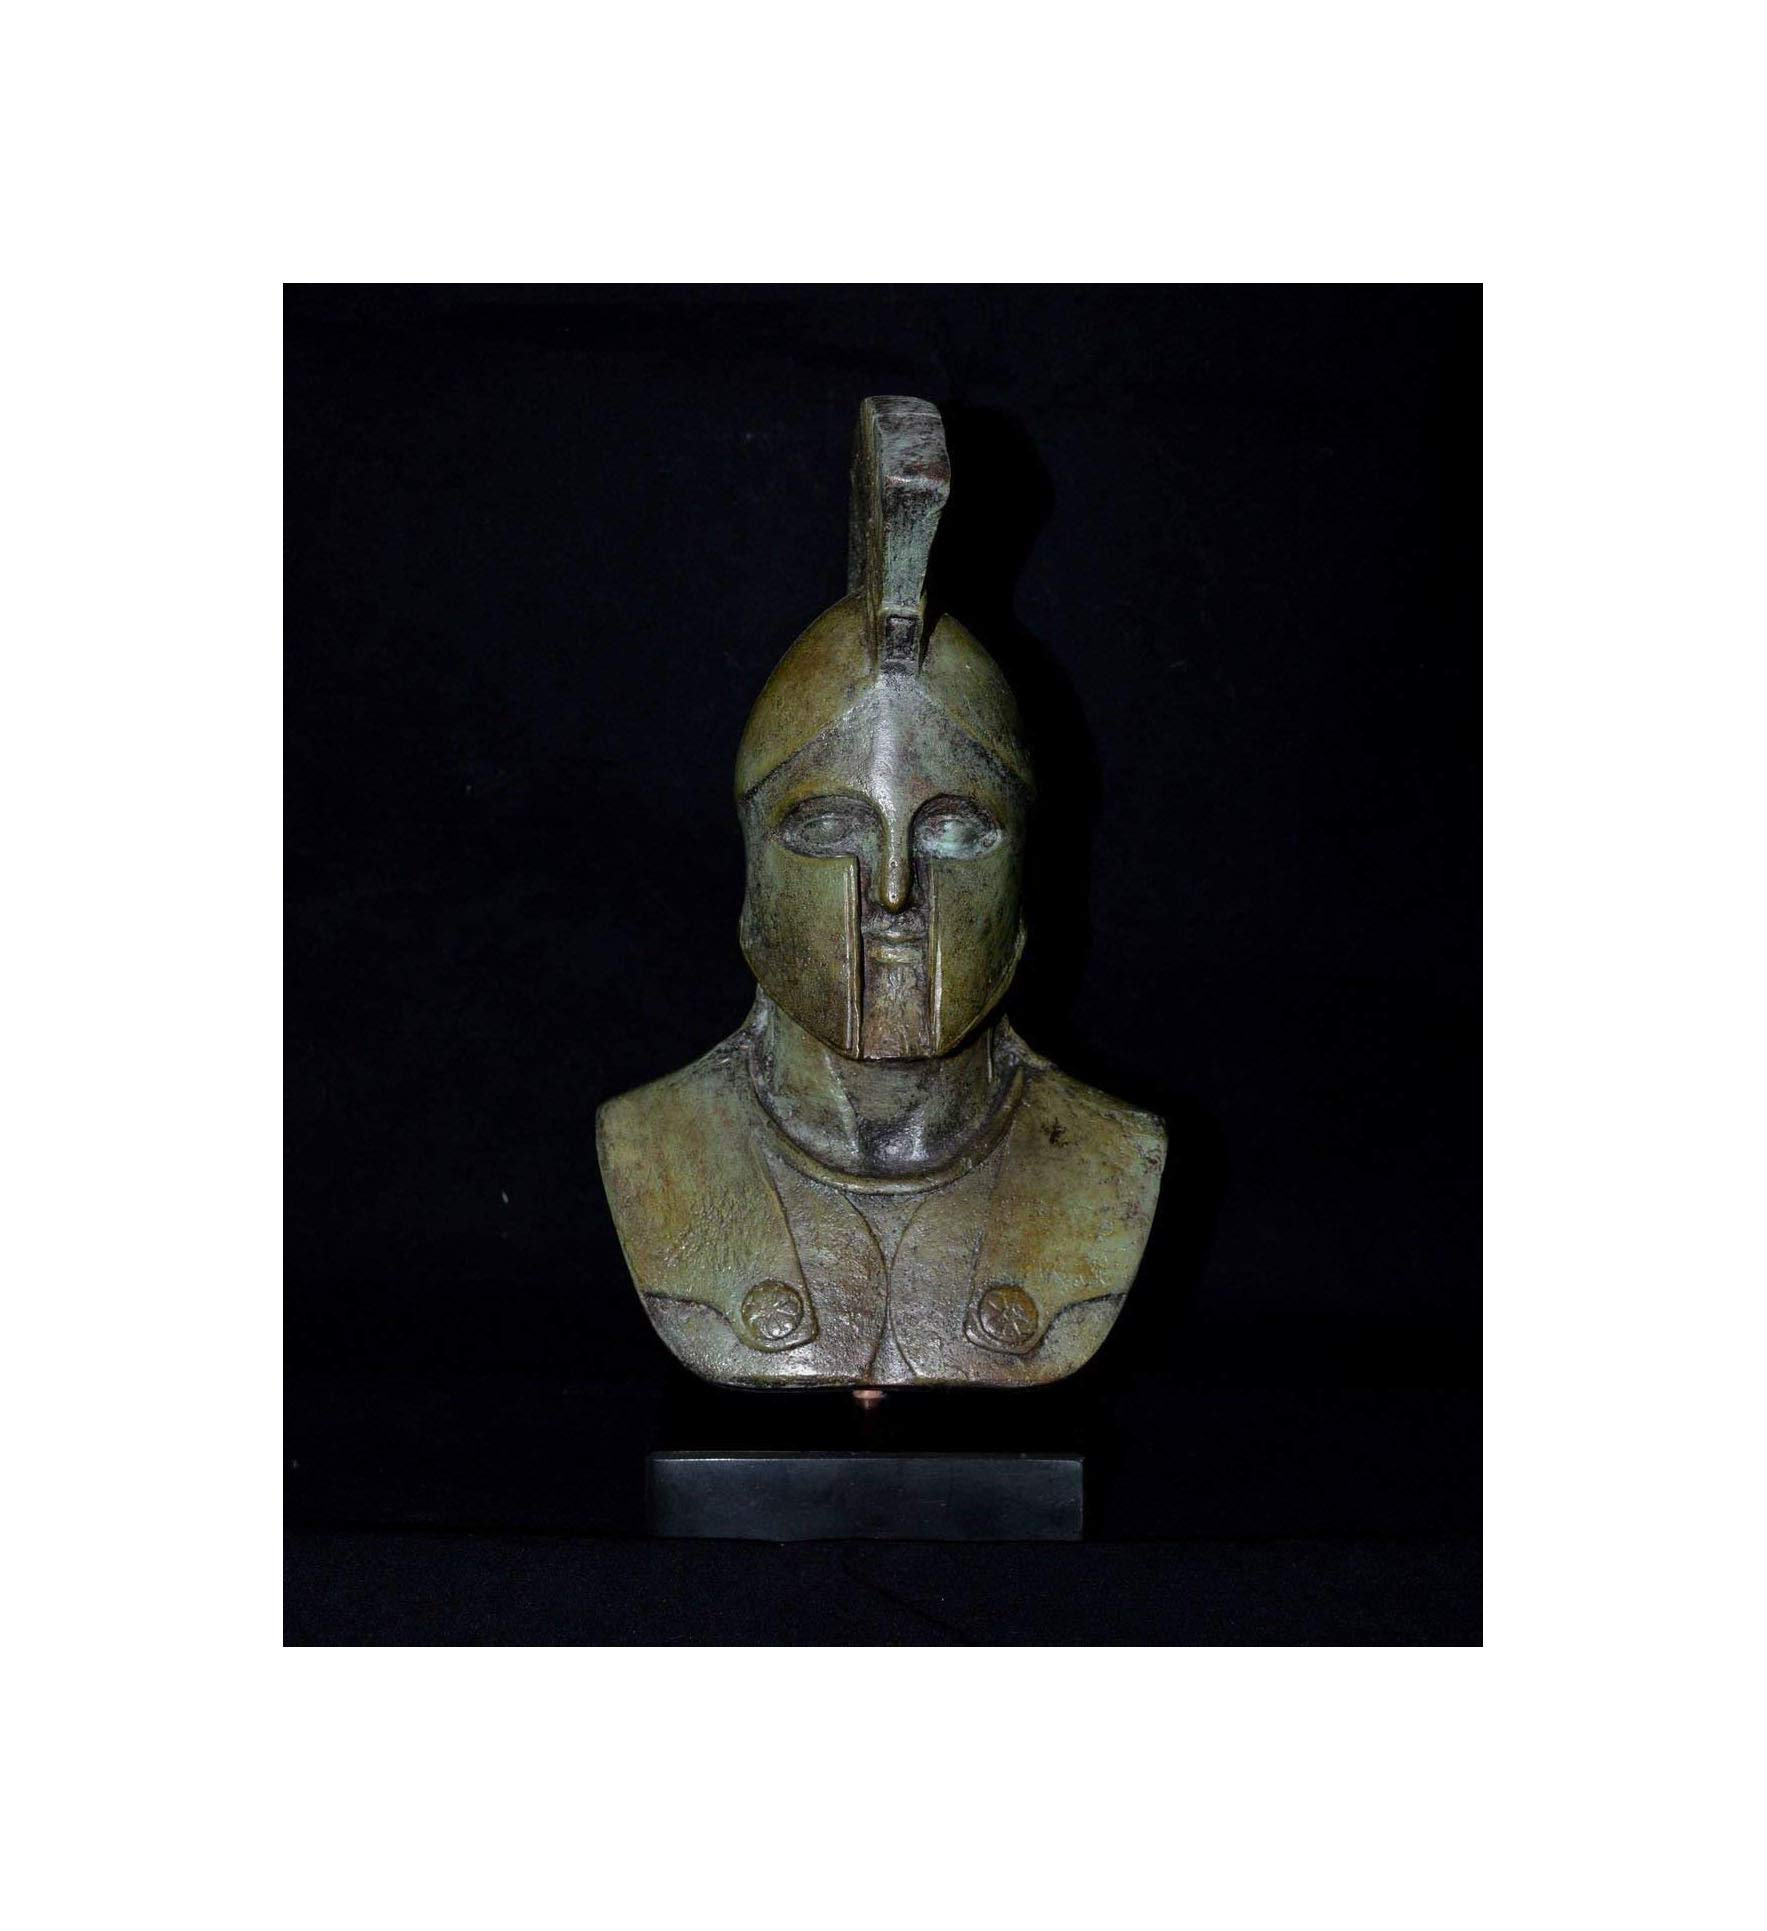 Talos Artifacts Leonidas King Of Spartans Bronze Bust - Battle of Thermopylae - Lost Wax Cast